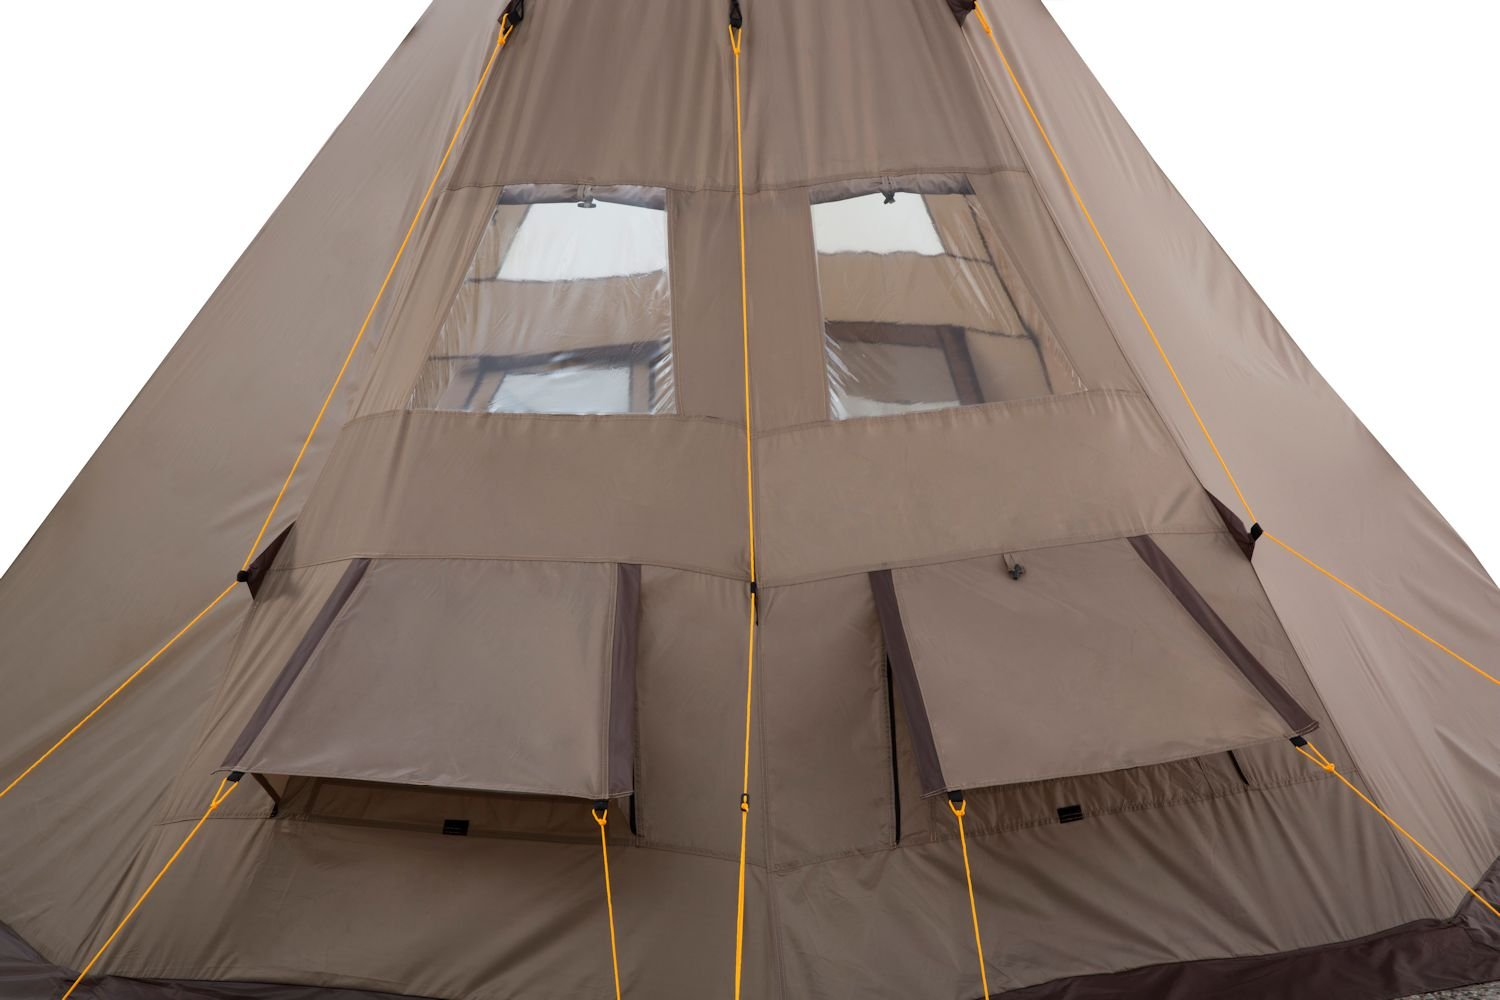 CampFeuer - Teepee Tent, Tipi brown 6